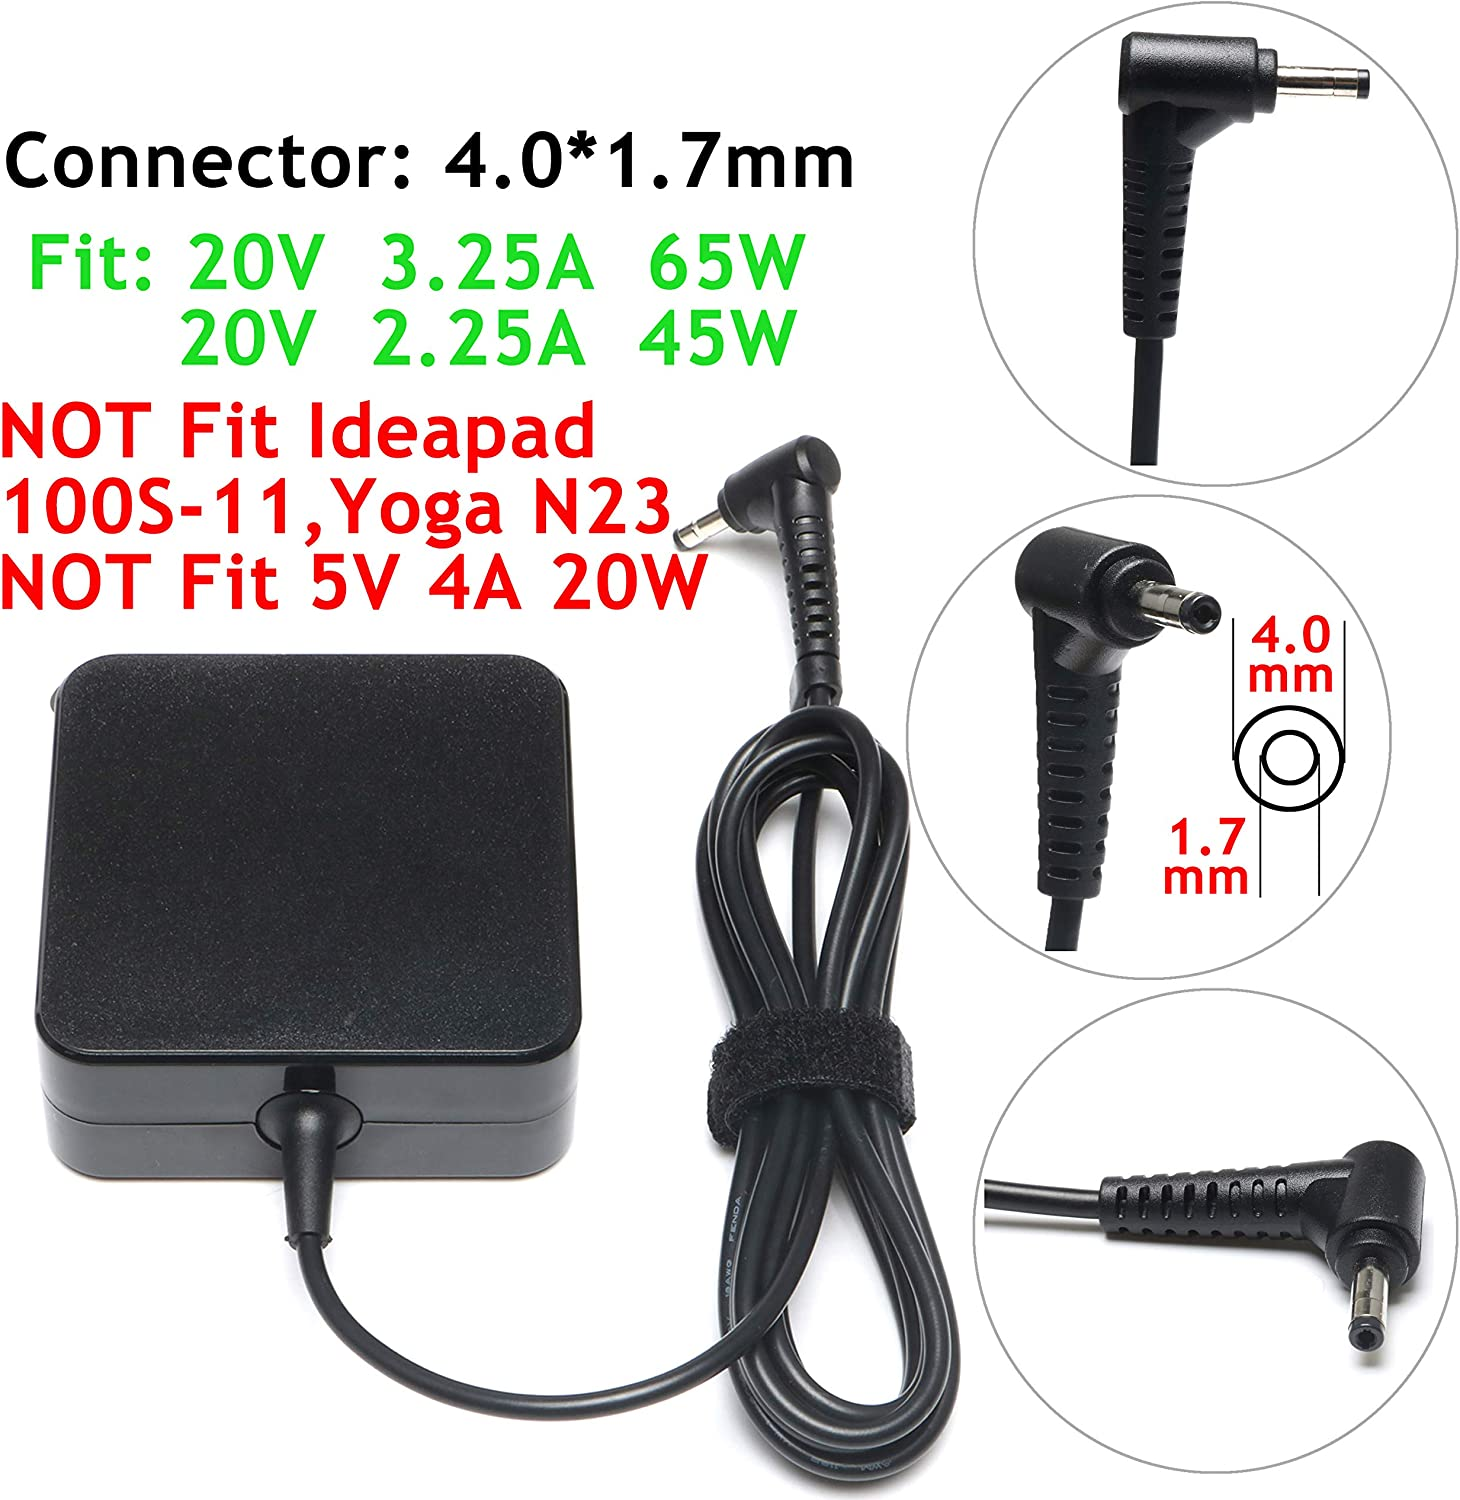 45W 65W AC Charger Adapter for Lenovo Ideapad 100S 100 110 110S 120 120S 310 320 320S 330 510 510S 710 710S 720S,Chromebook-N22 N23 N42 Yoga 710 510,Flex 4 1480 1580,Flex 5 Laptop Power Supply Cord